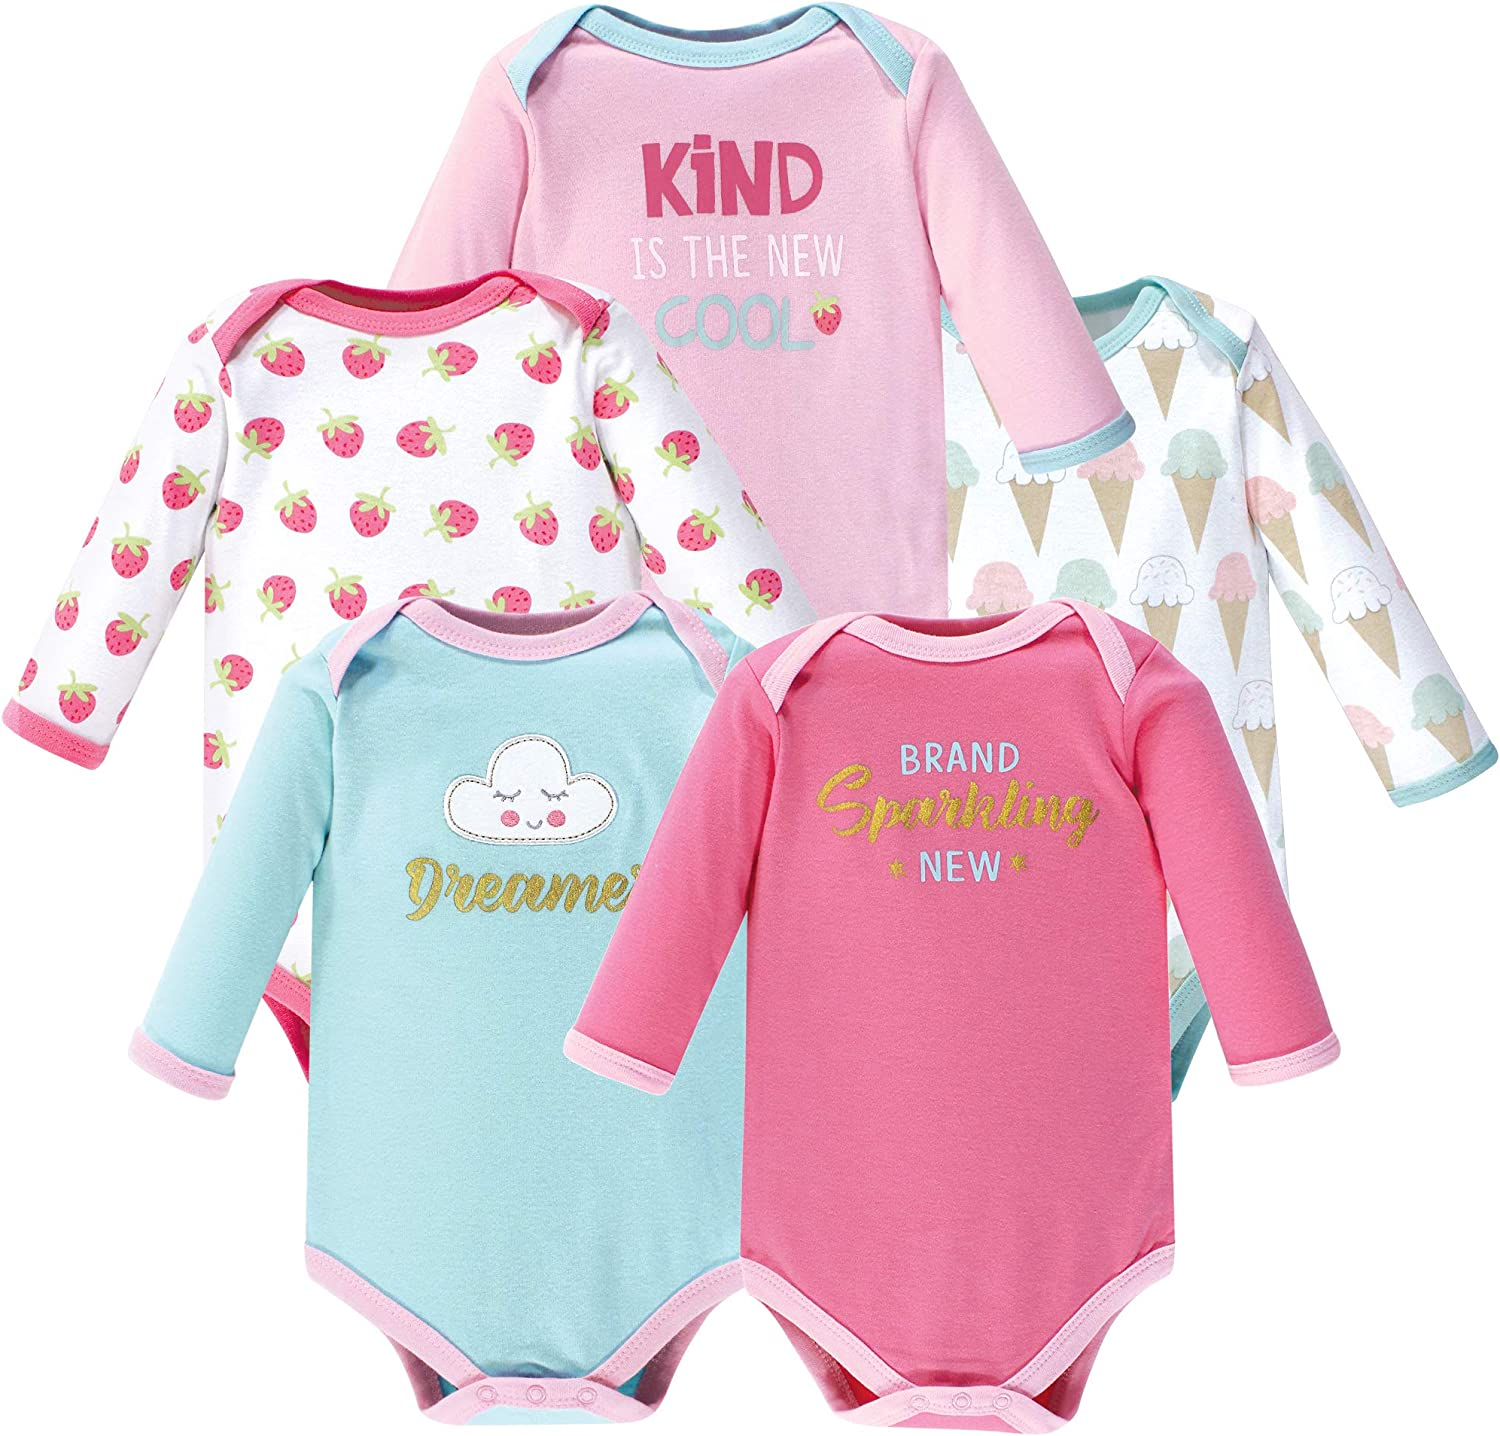 Luvable Friends Unisex-Baby Long Sleeve Bodysuits T-Shirt Set